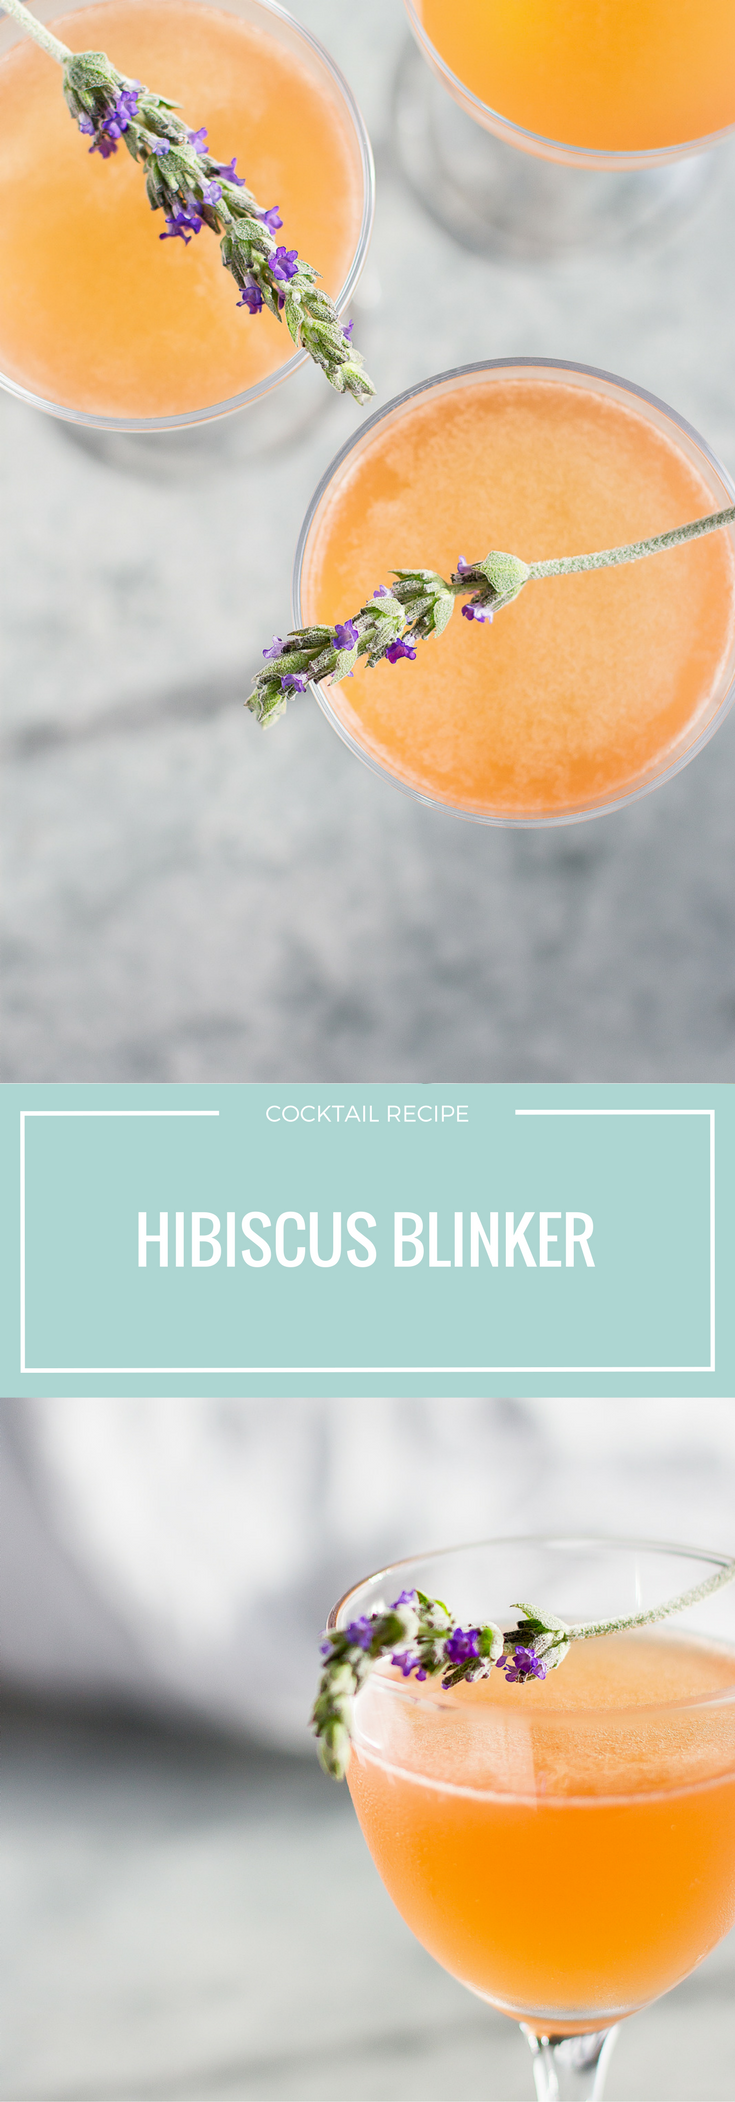 This Hibiscus Blinker is a fast and easy spring cocktail recipe. Only 3 ingredients: grapefruit, whiskey, and homemade hibiscus syrup! Click through for the recipe.